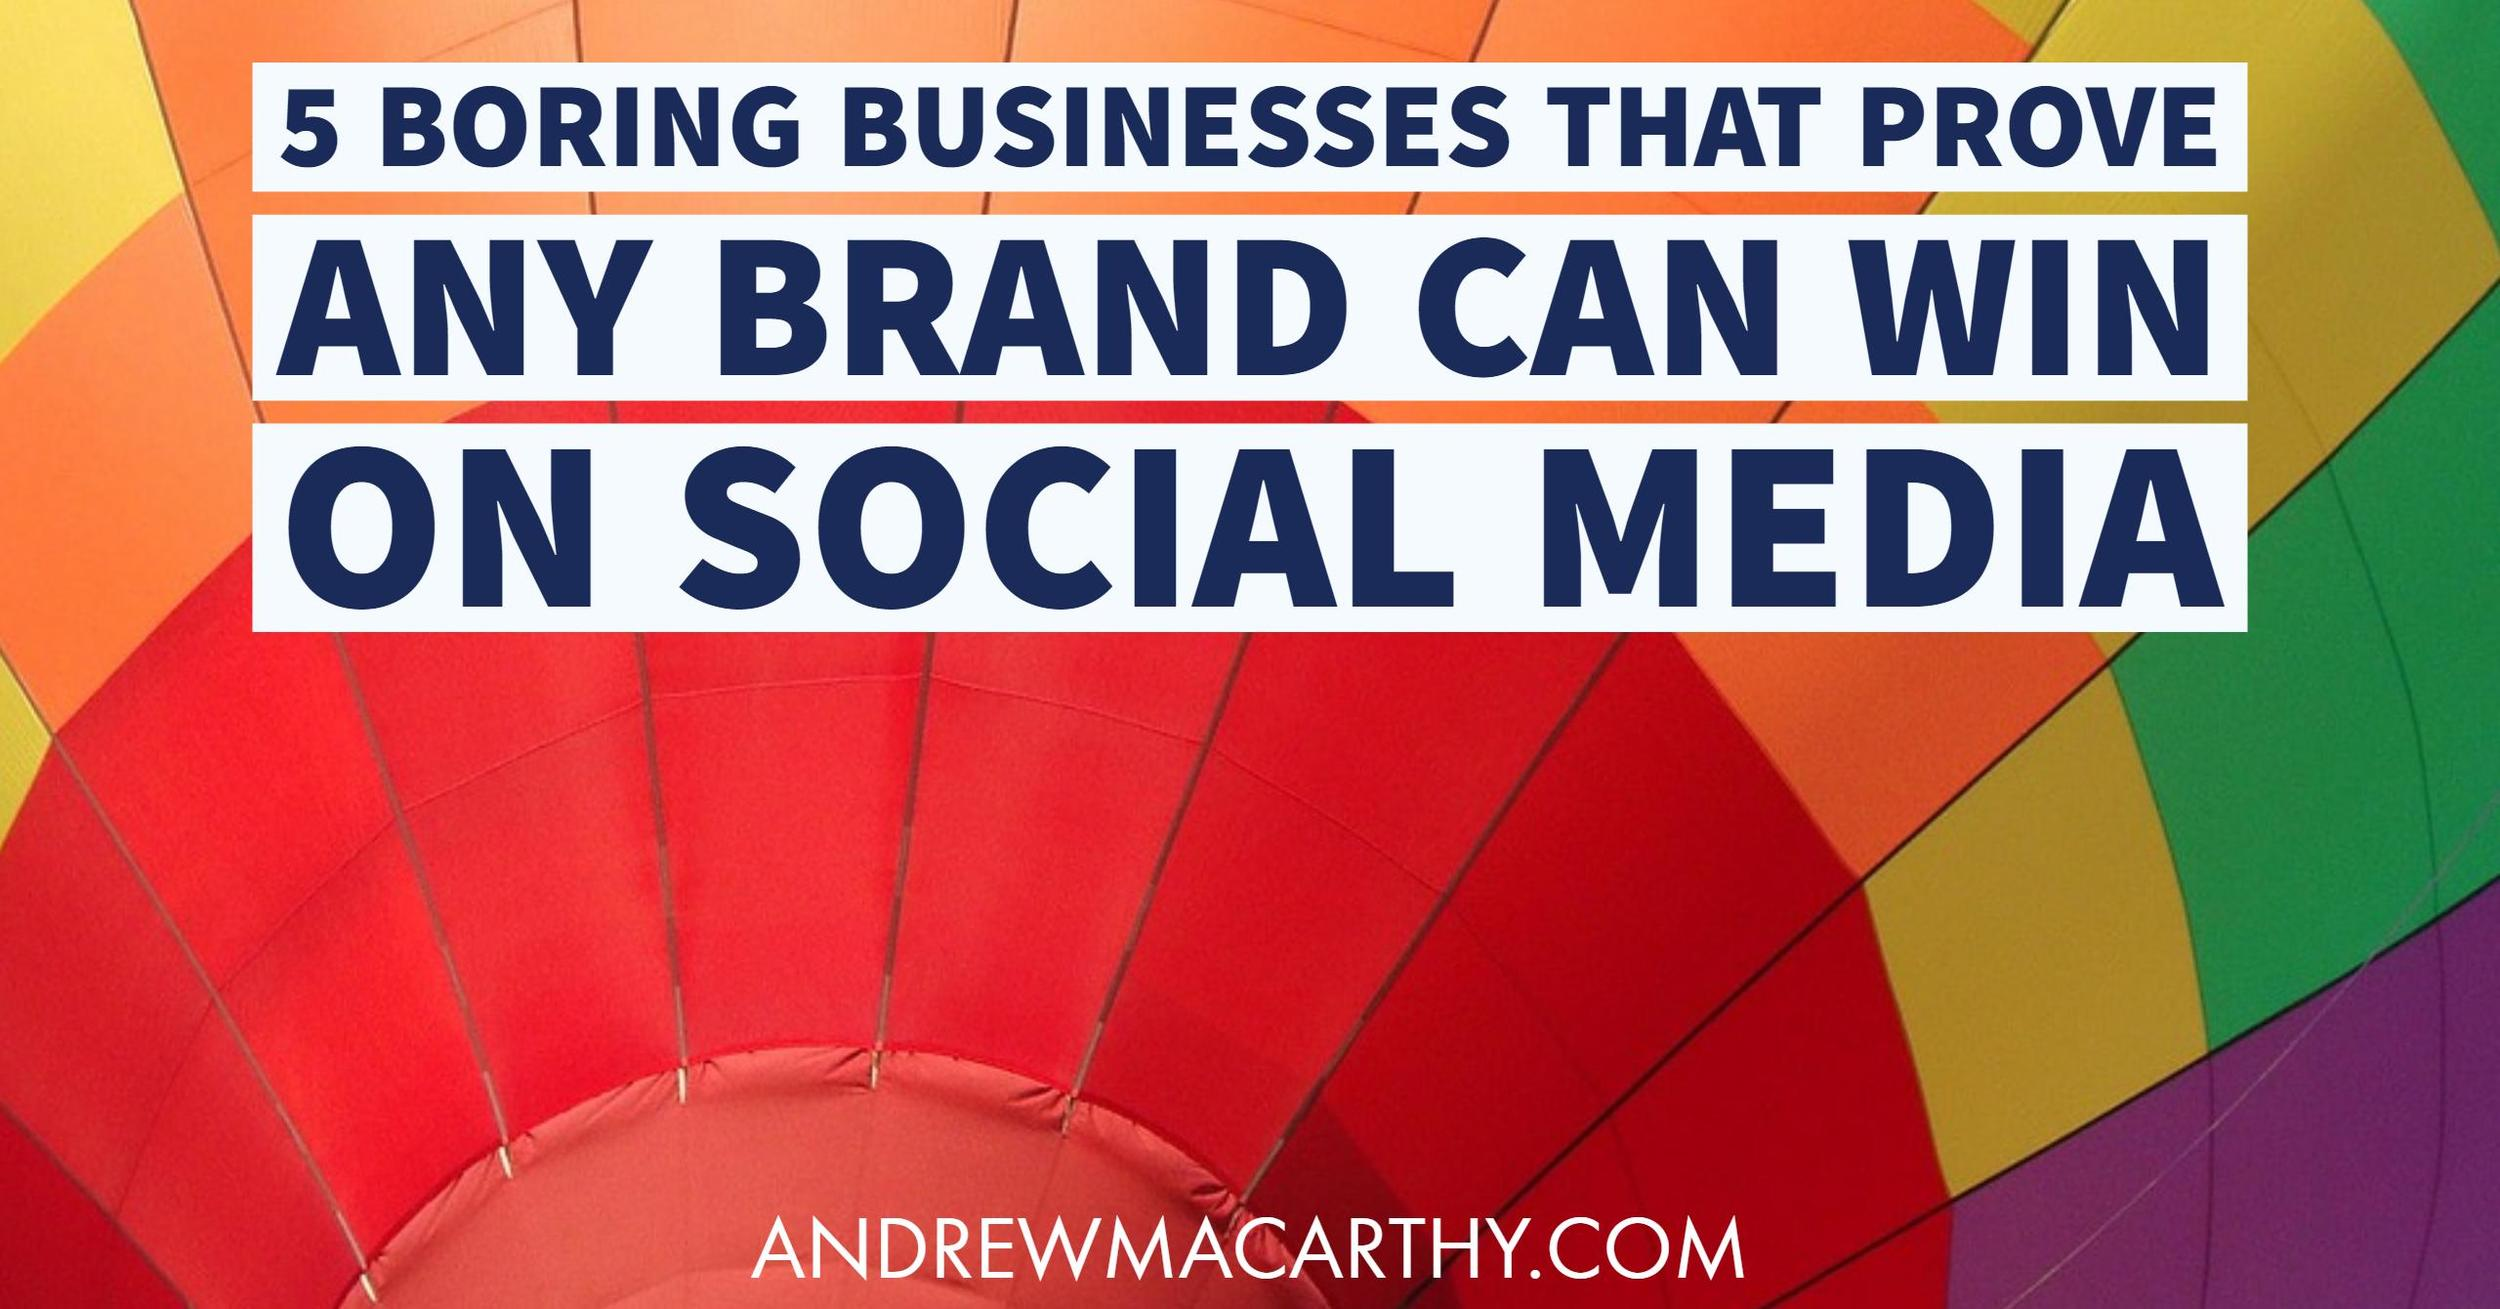 5 Examples of Boring Businesses That Prove ANY Brand Can Win on Social Media